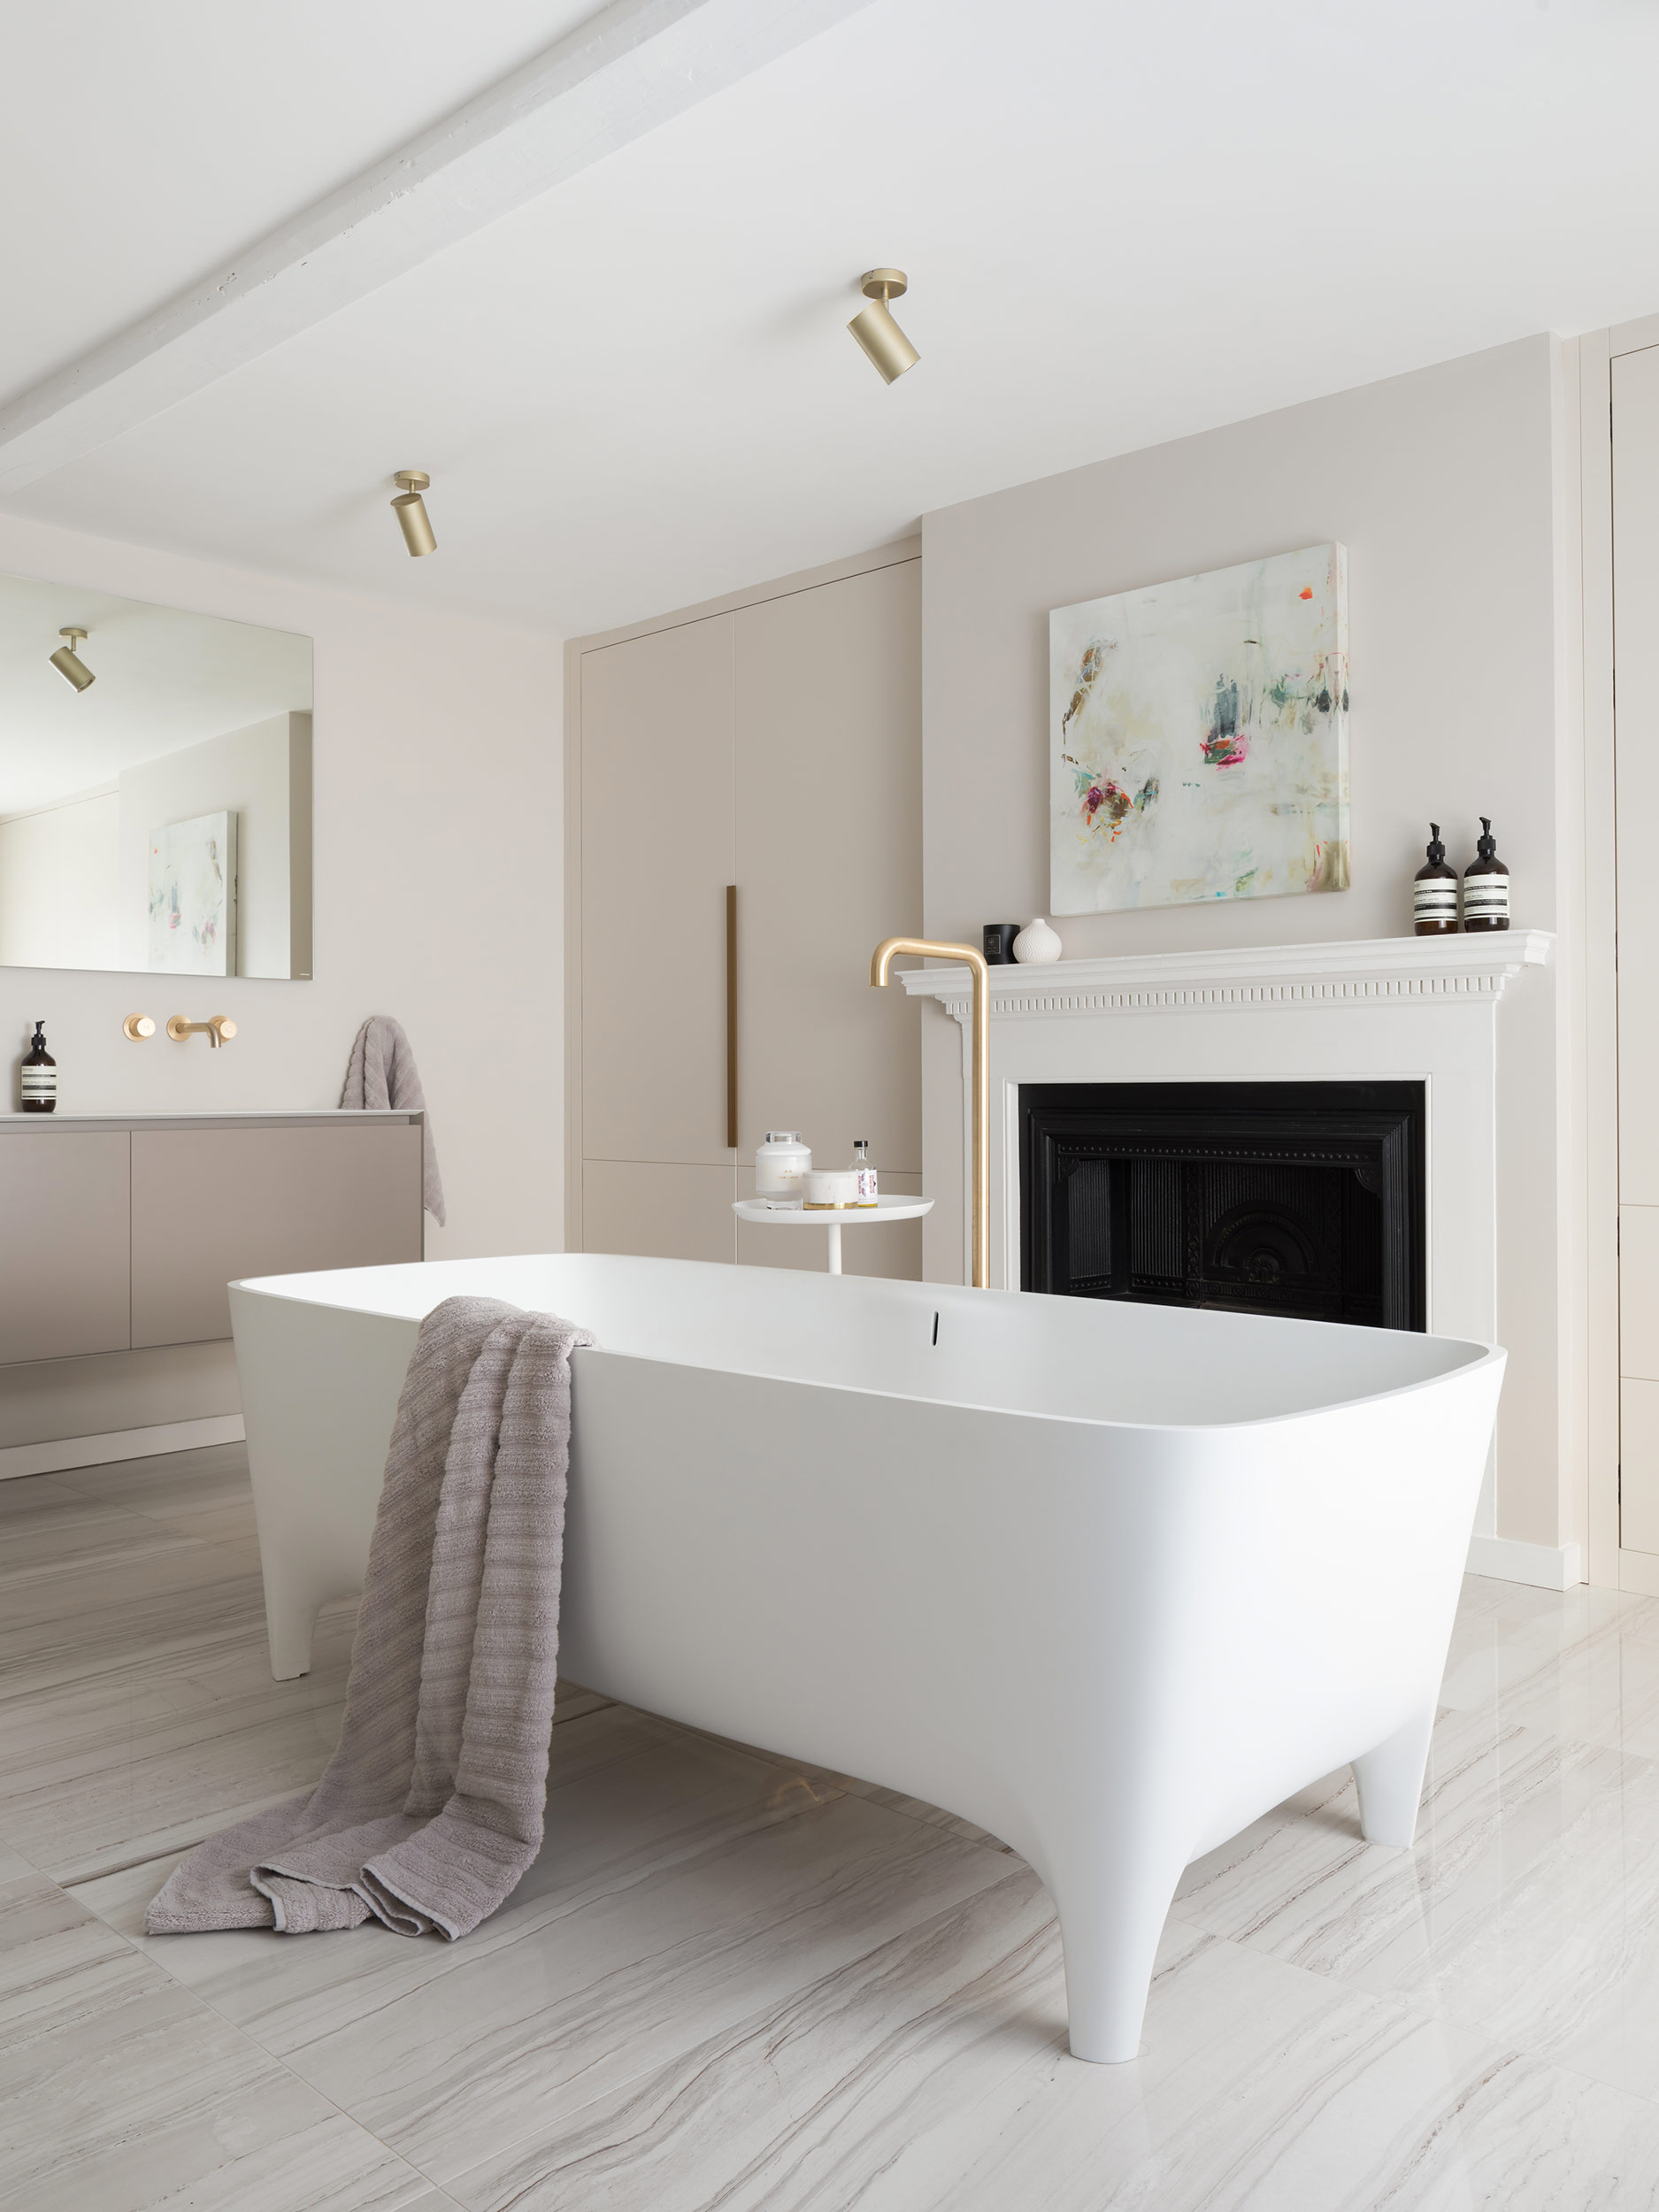 West One Bathrooms Case Studies The Master Suite 1b